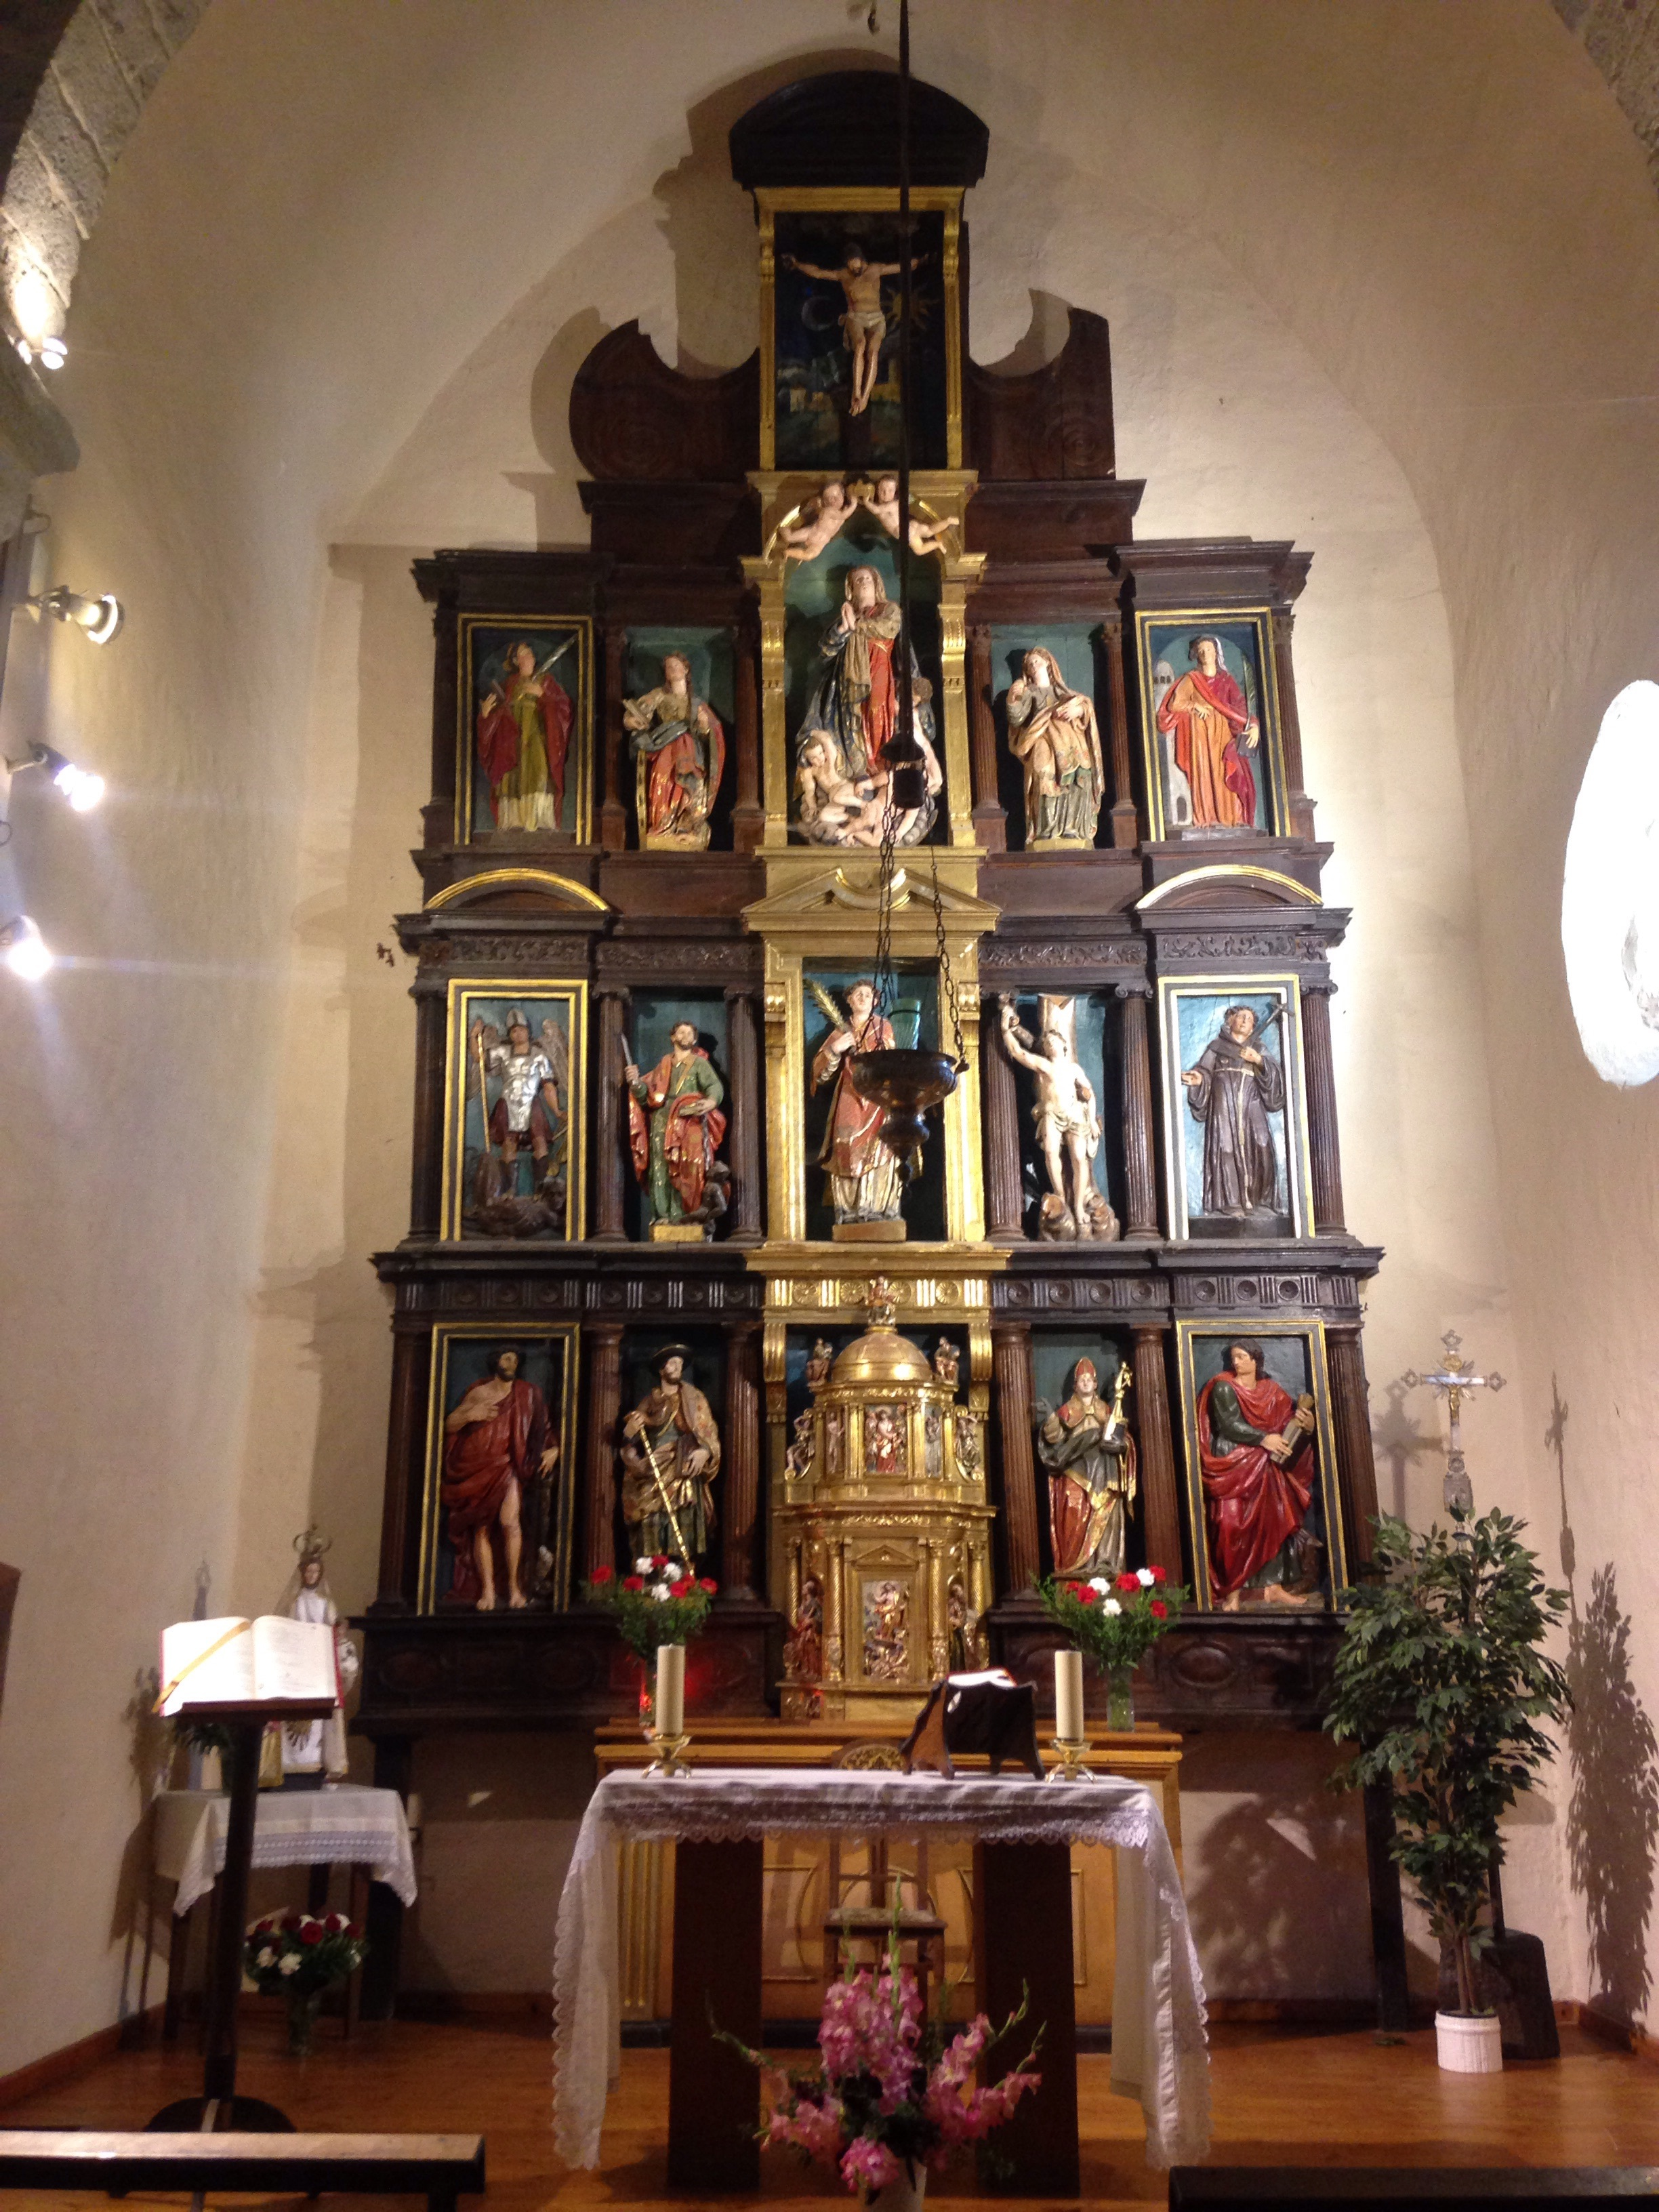 The alterpiece at Iglesia de San Esteban